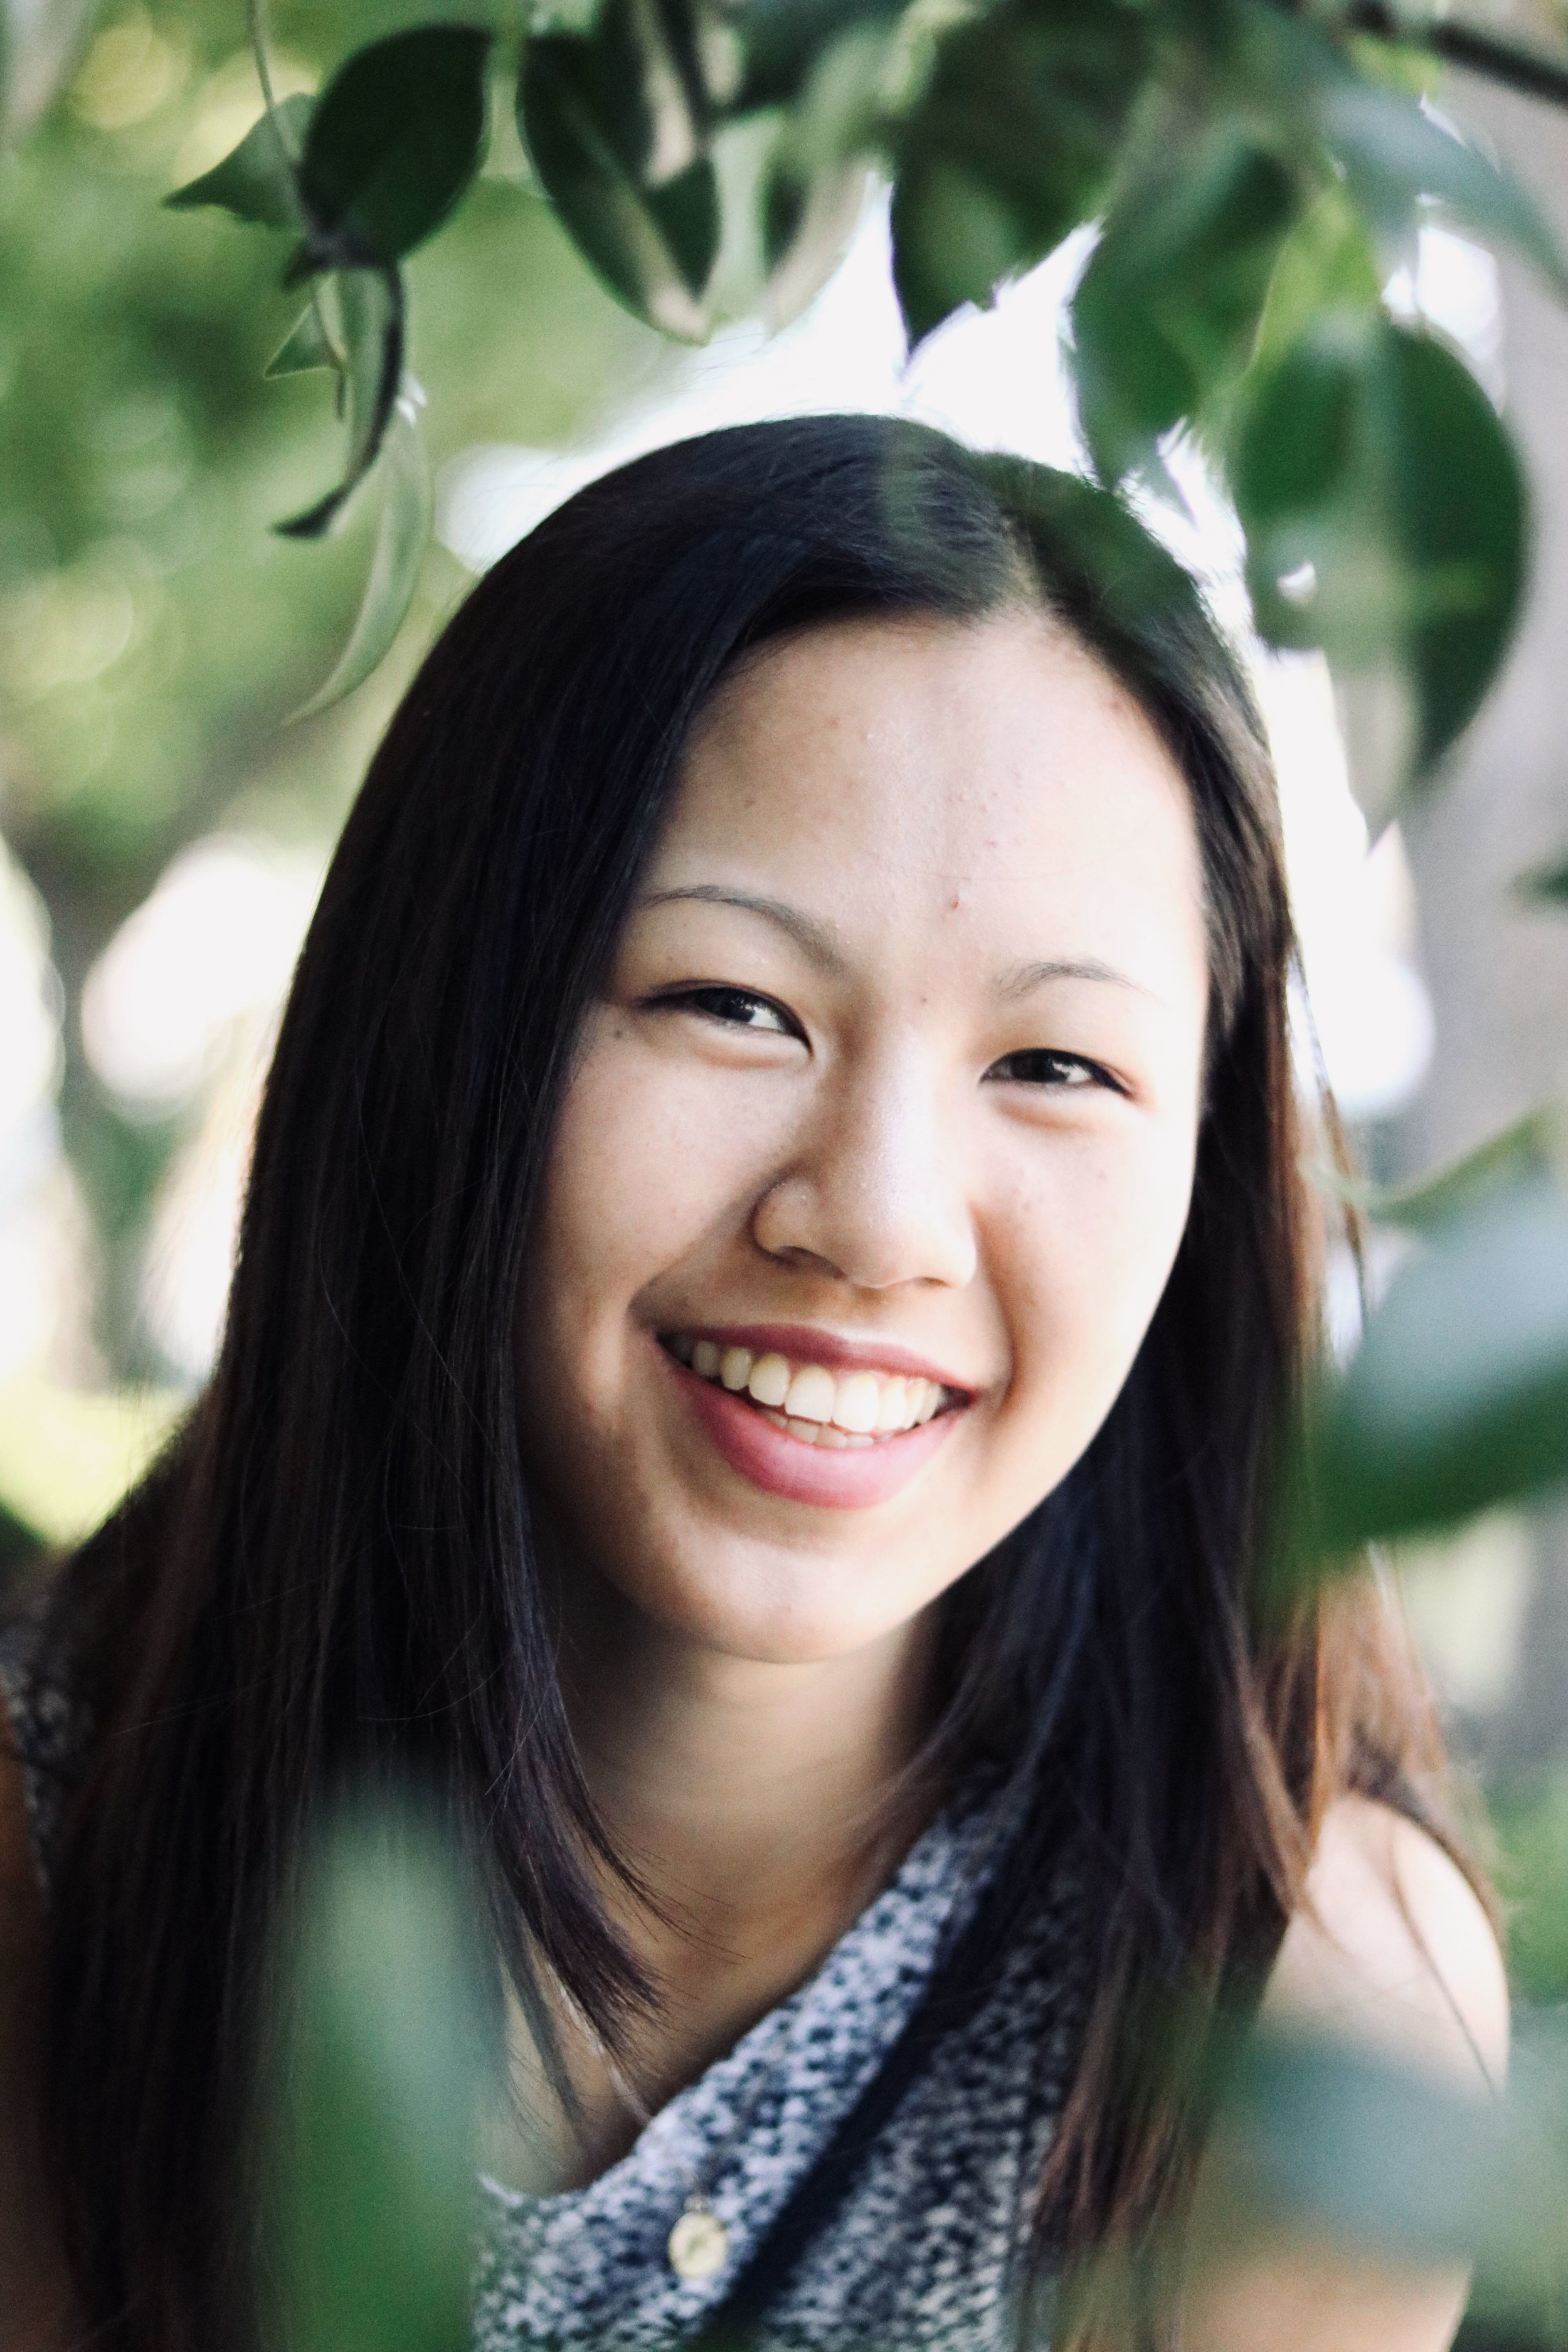 Sarah Yung - Sarah serves as EqOpTech's editor, marketing communications. She is a rising senior at Los Altos High School. She enjoys exploring interesting topics in all types of science and sharing what she's learned with her friends. She is also involved in her school's choral department and softball team. In her free time, she likes creative writing and drawing, and is currently teaching herself how to code. She is passionate about math, music, and helping others.Publications:- Machine Arts- Intelligent Transportation- The Machine Edge- Intelligent Money- Machine Doctors and Disease DetectivesBlogging project:- EqOpTech Experiences New GrowthMarketing collateral content production